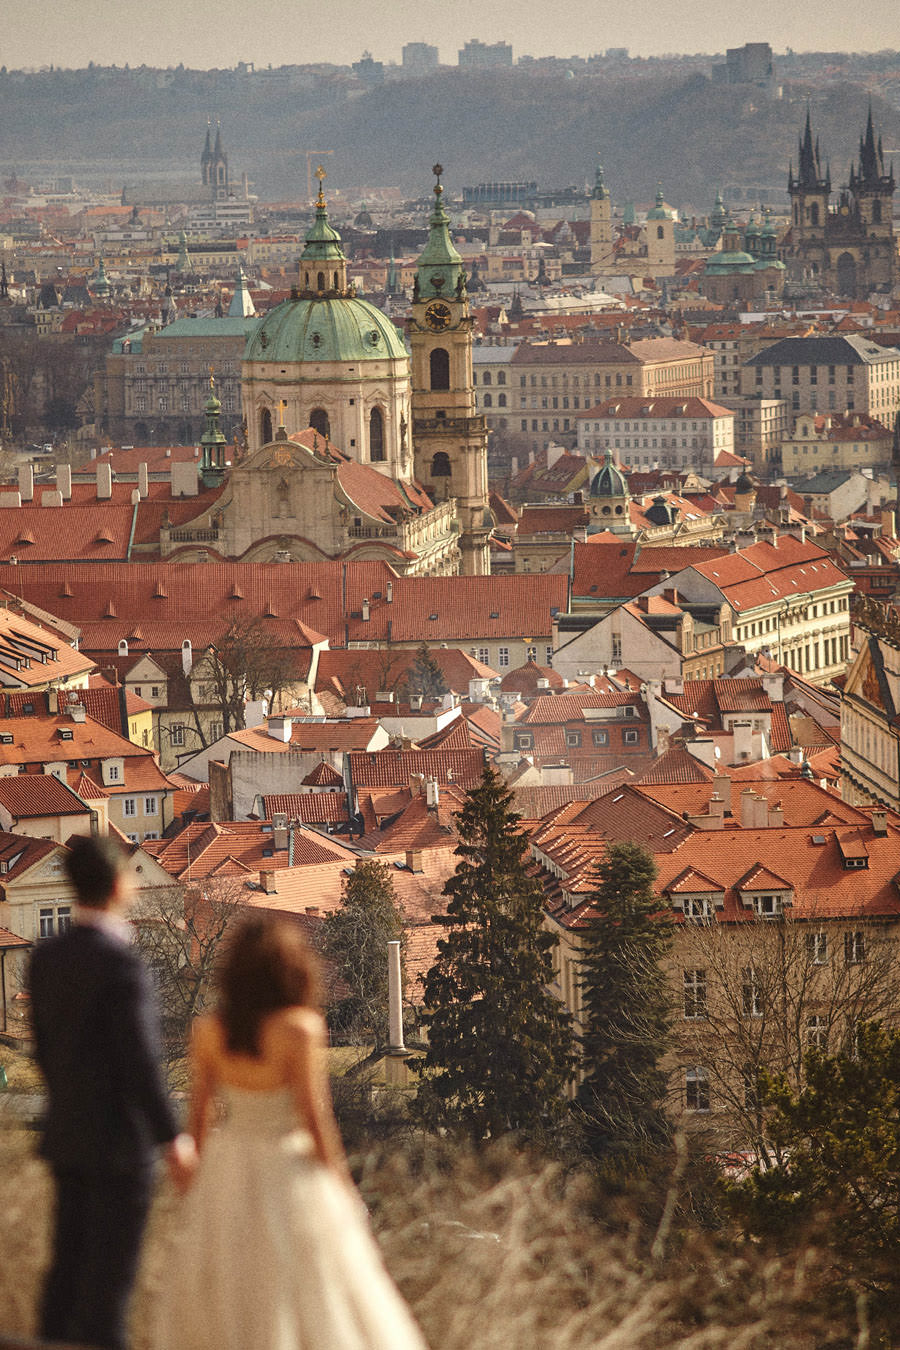 The beautiful city of Prague down below - from a Love Story Engagement photo shoot with Tina & Mike